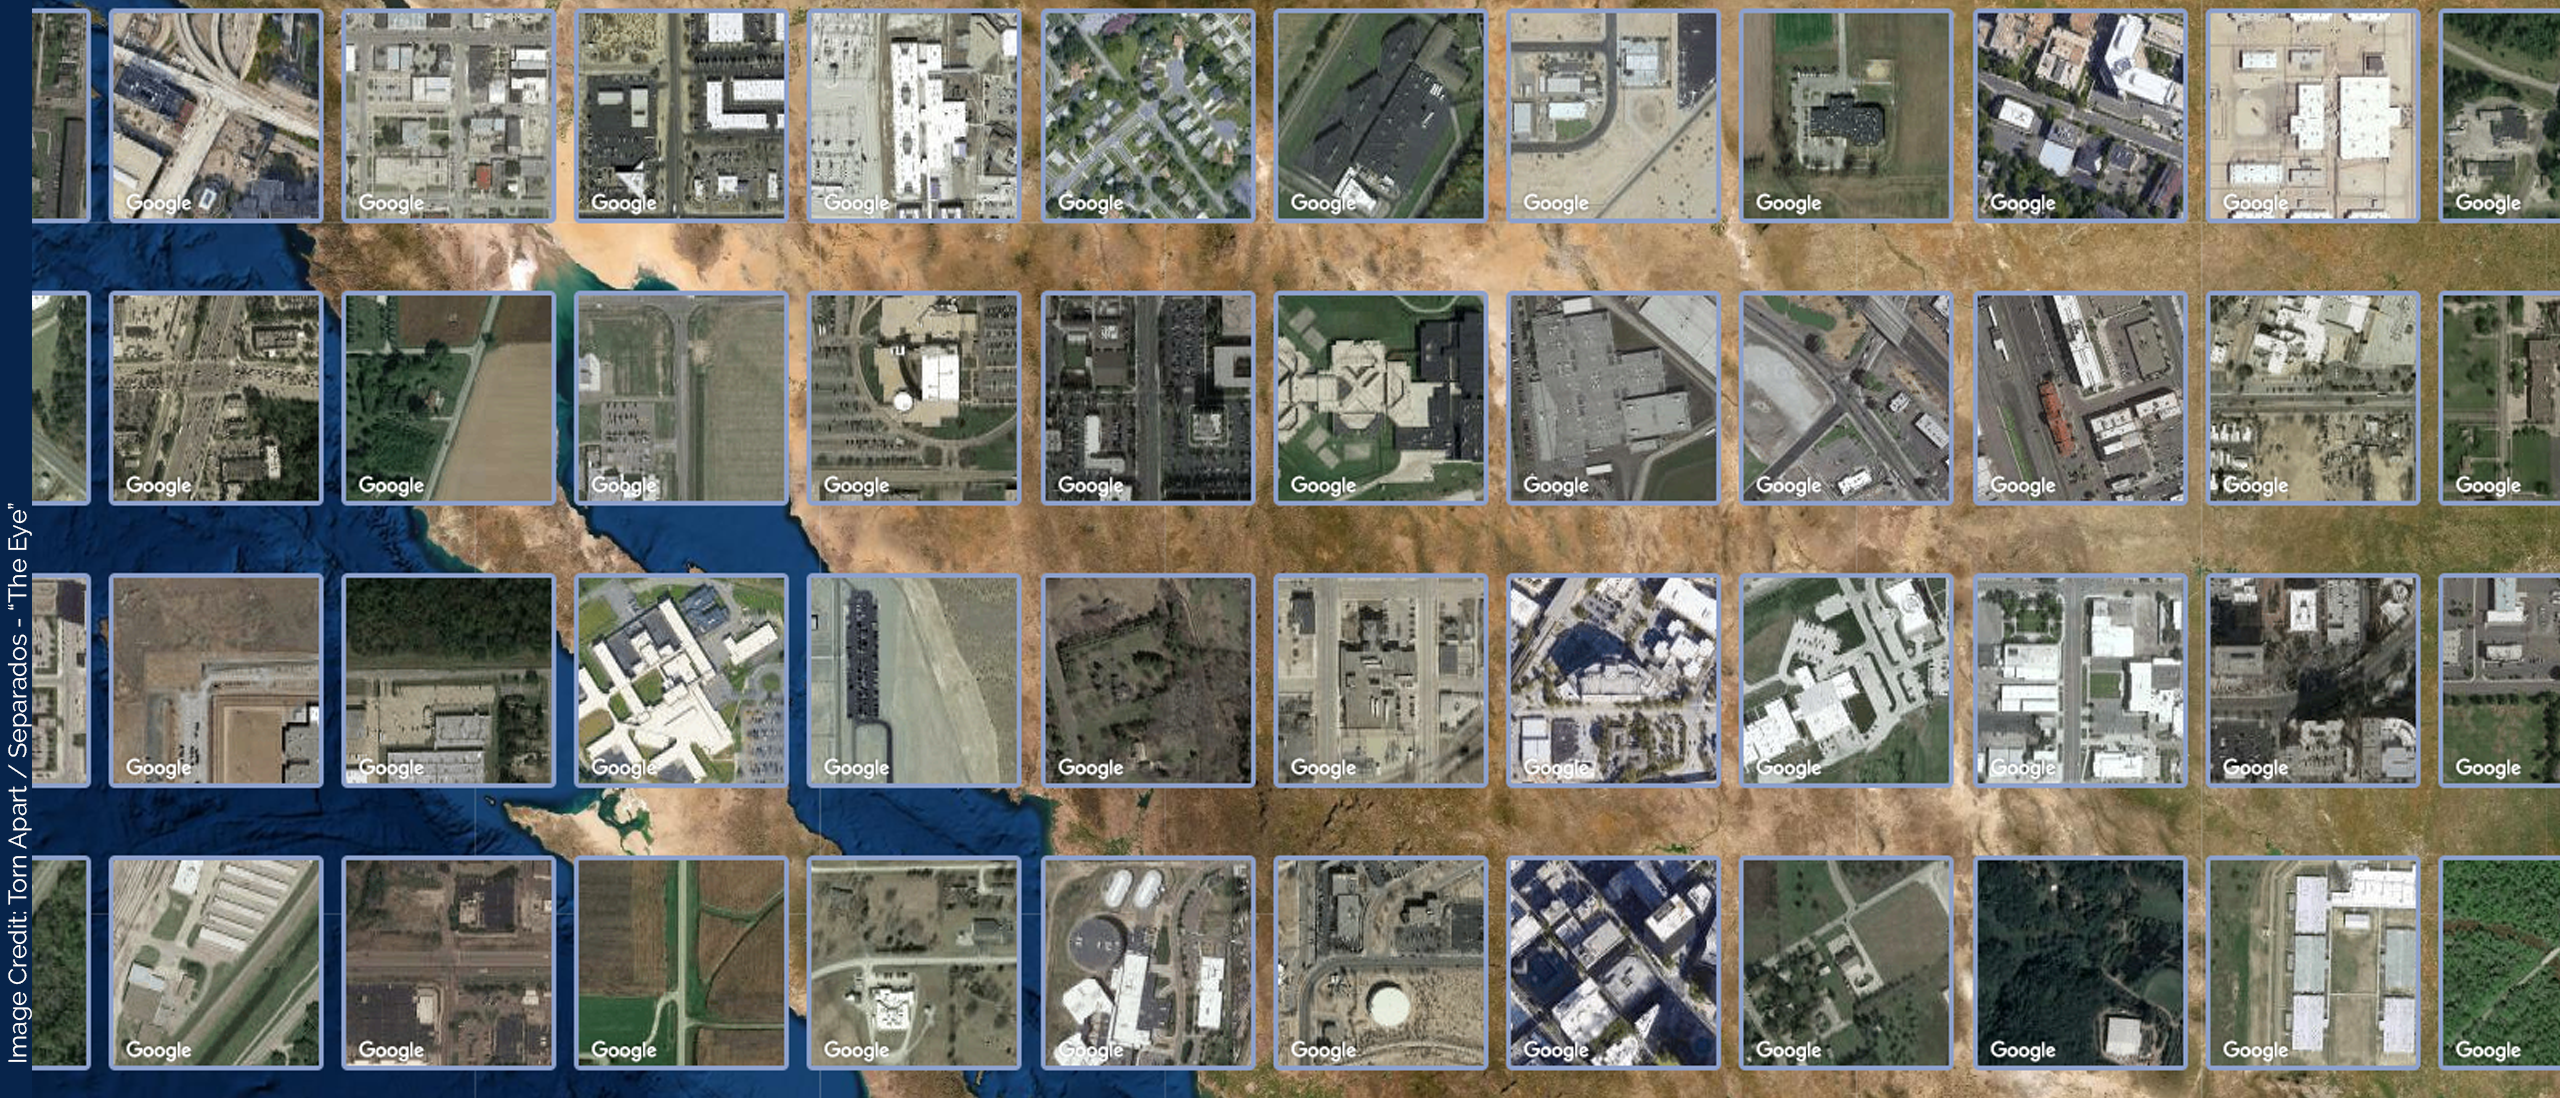 Data visualization comprised of grid thumbnails of locations on google maps. Image taken from Torn Apart / Separados - The Eye